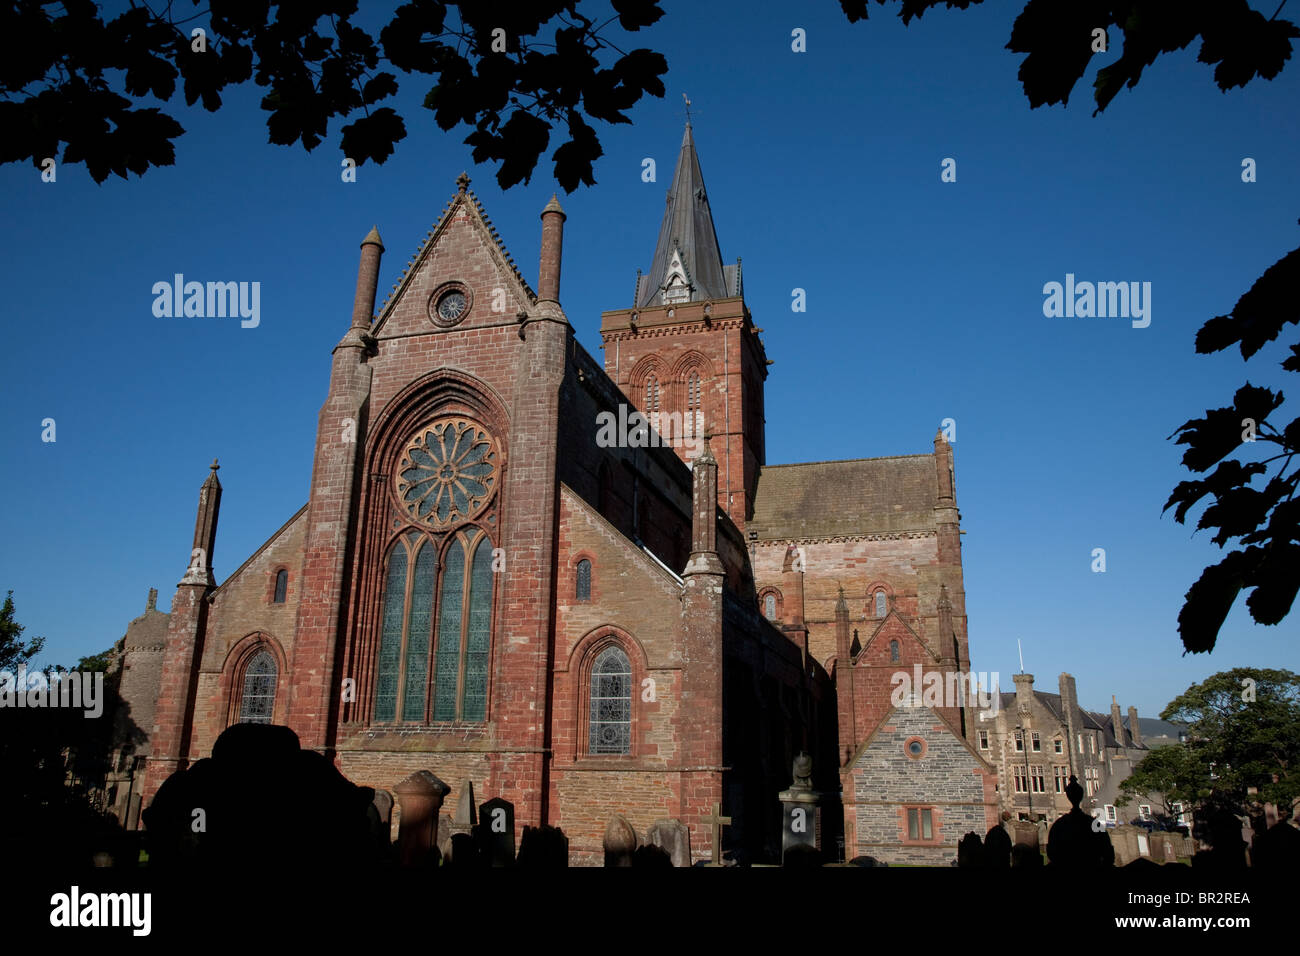 St Magnus Cathedral, Kirkwall in Orkney Islands, Scotland - Stock Image